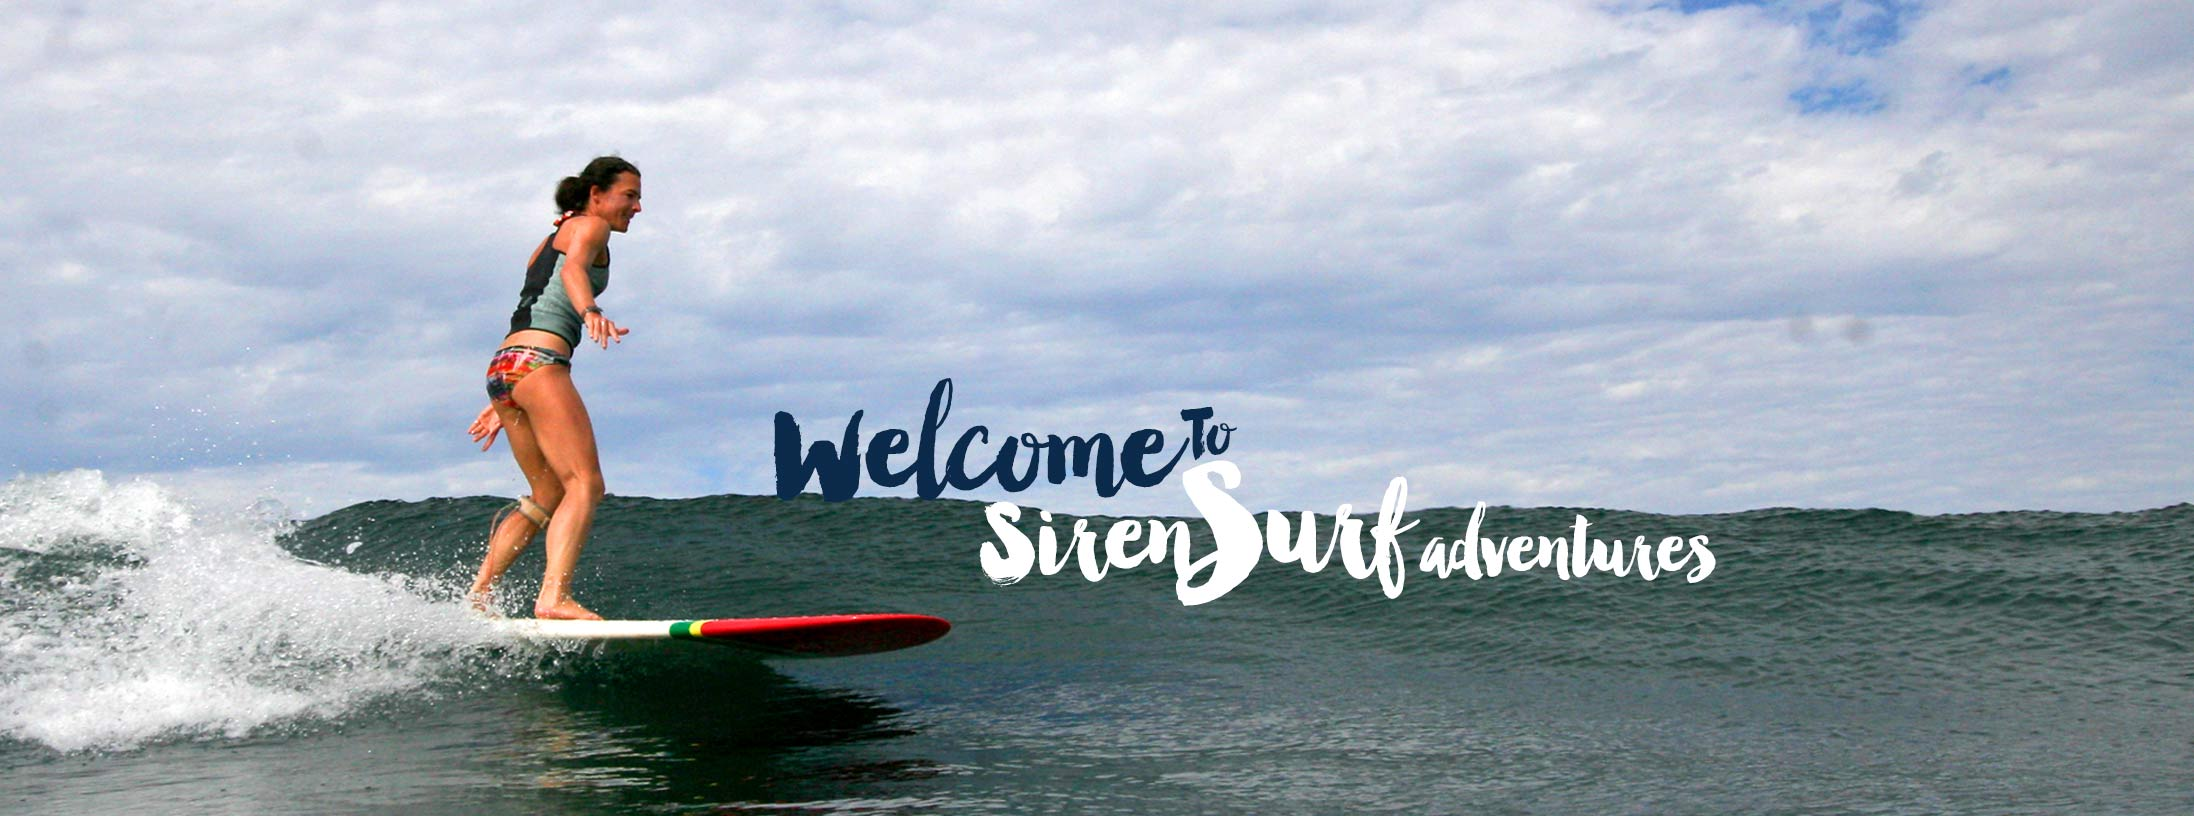 Welcome to Siren Surf Adventures